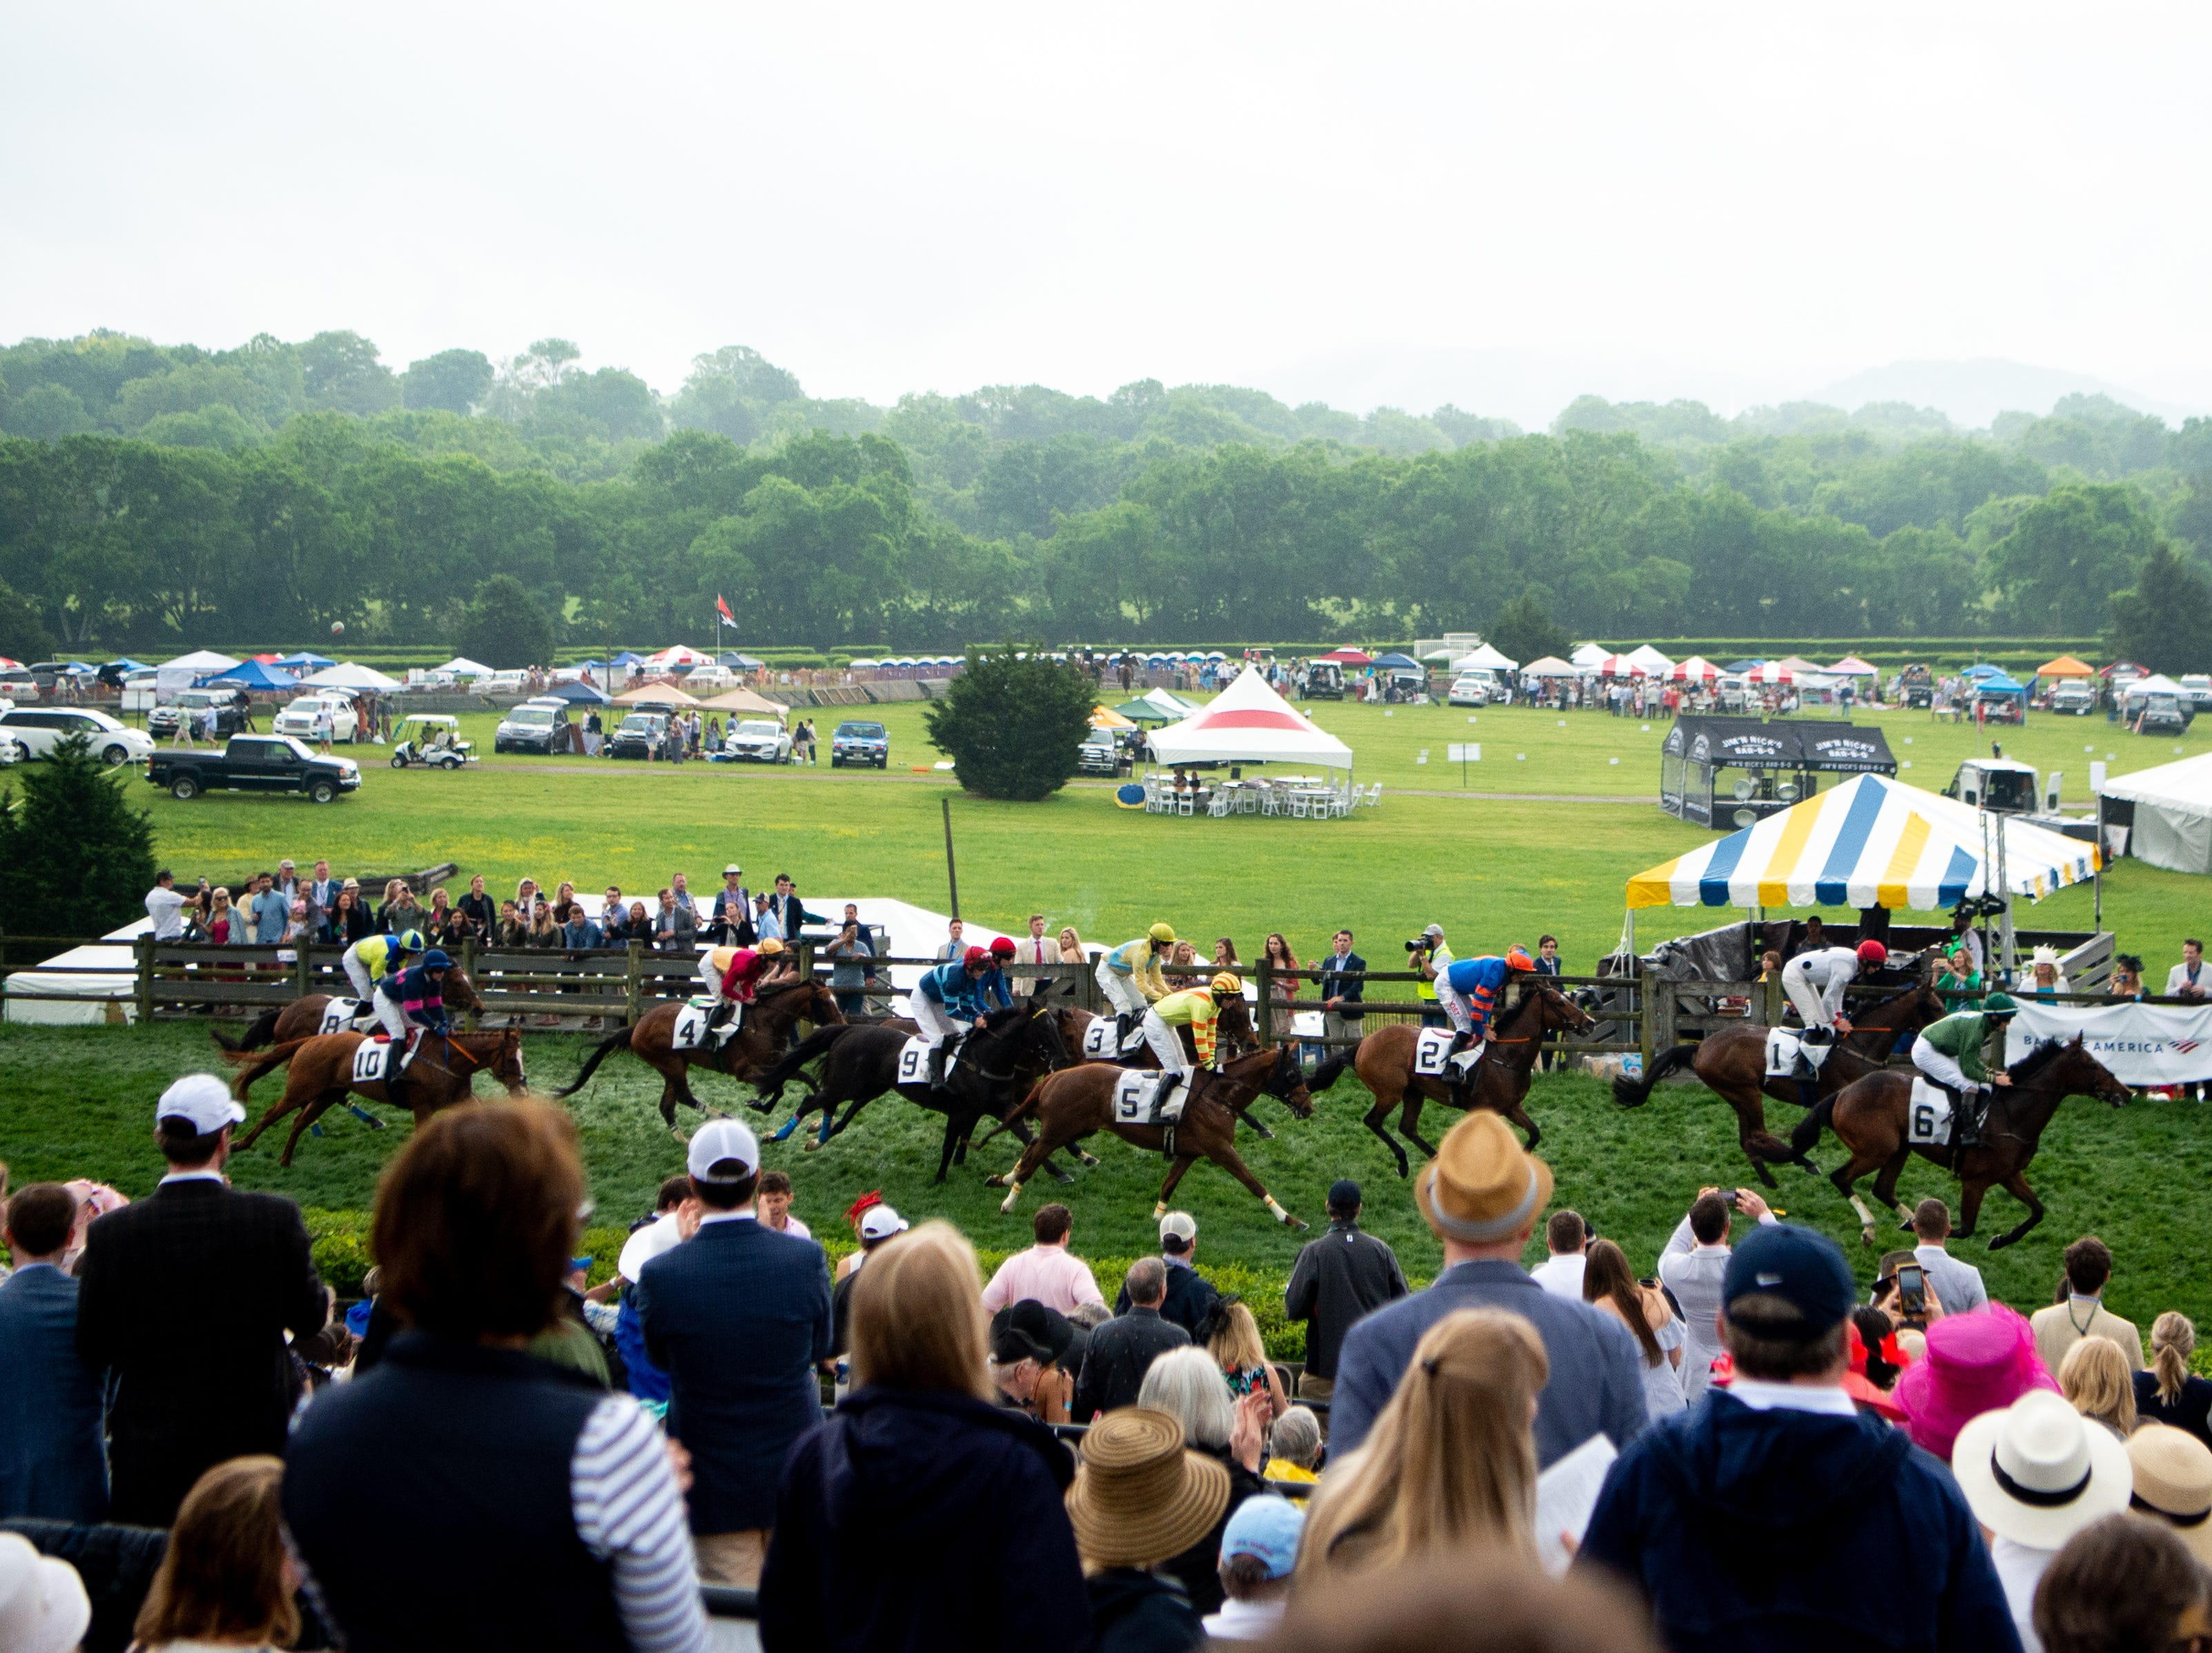 Horses and jockeys compete during the fifth race of the Iroquois Steeplechase at Percy Warner Park Saturday, May 11, 2019, in Nashville, Tenn.